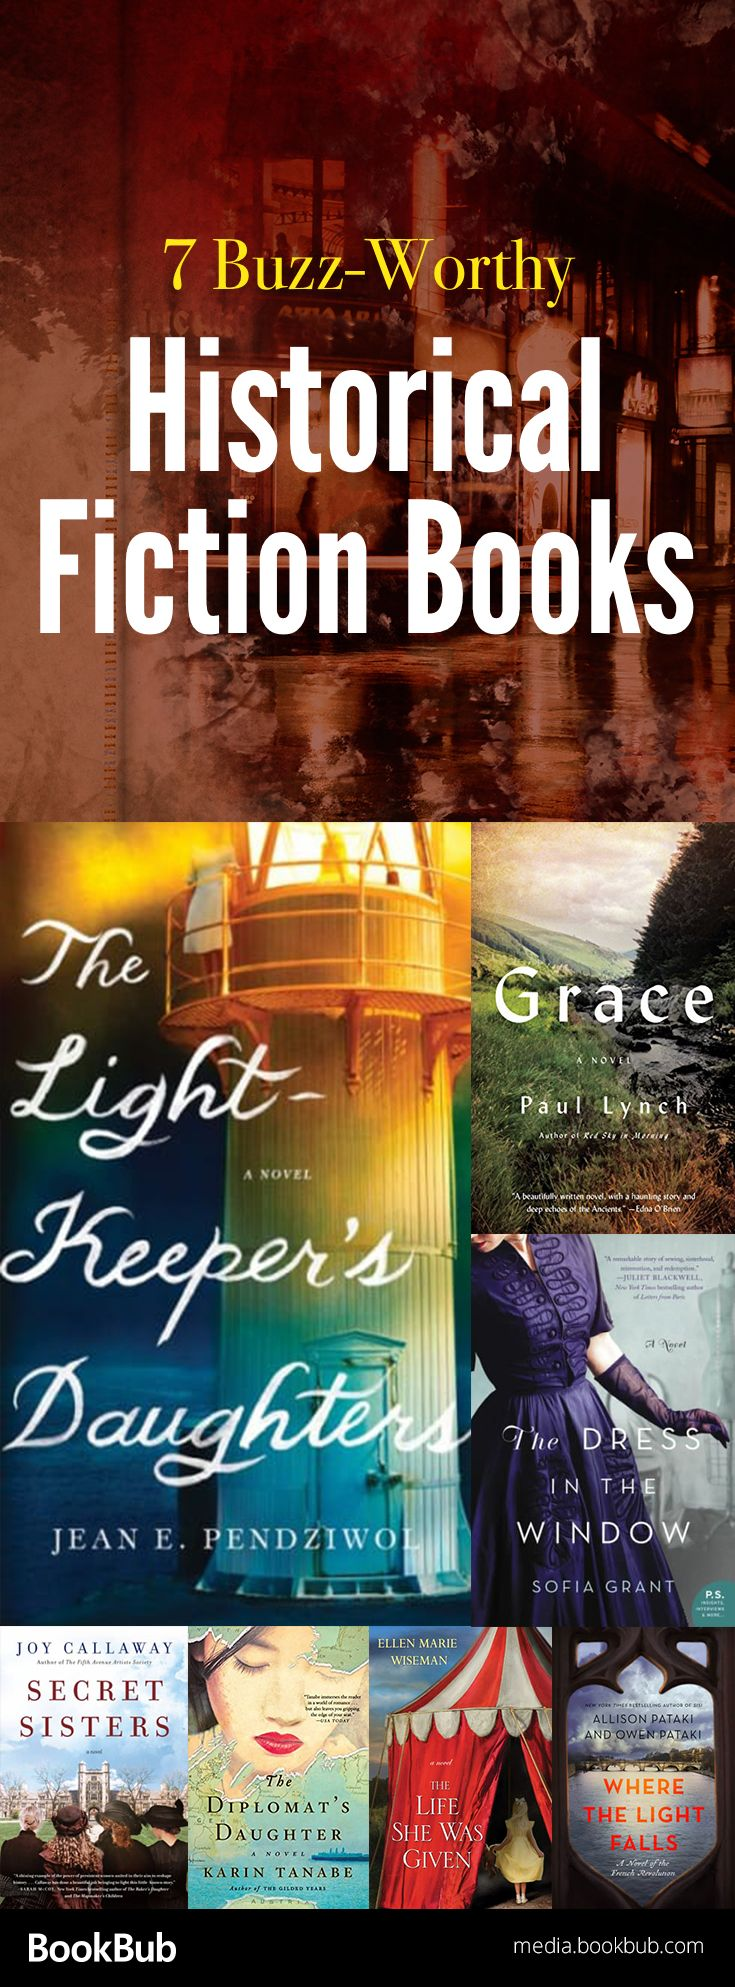 If you love history novels and historical fiction, check out these great books including WWII fiction and more.